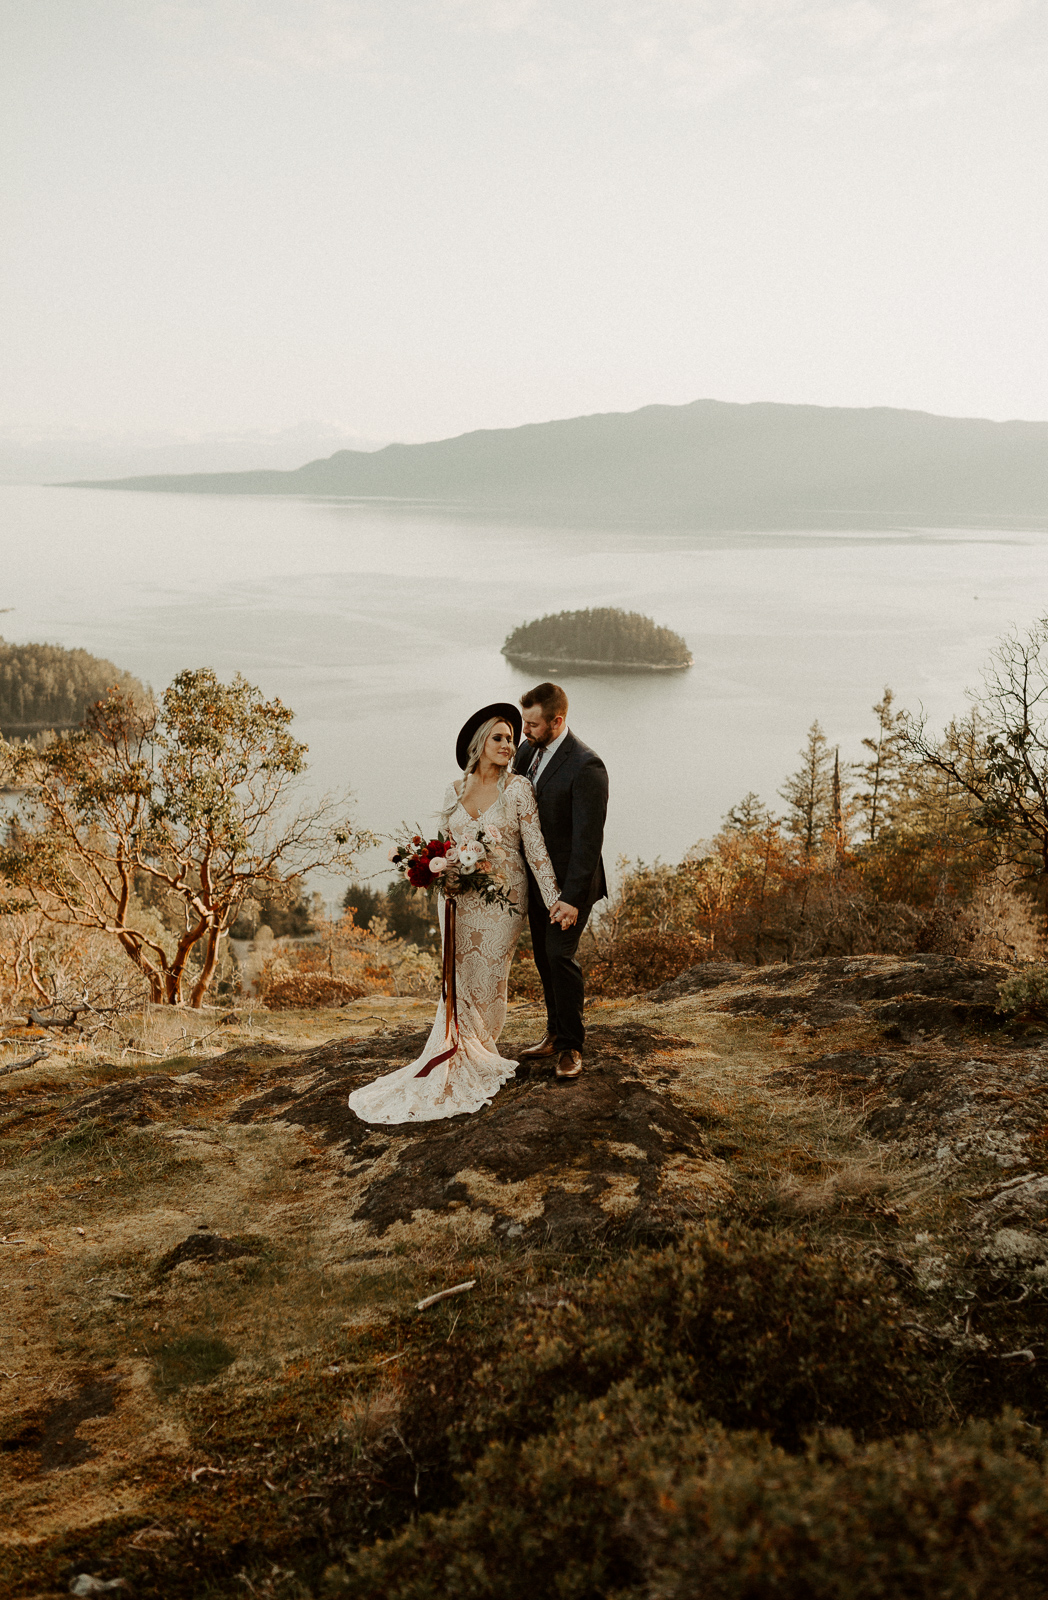 Luke Lambertson Photo_BritishColumbia_Canada_AdventurousCouple_Elopement_IMG-7940.jpg